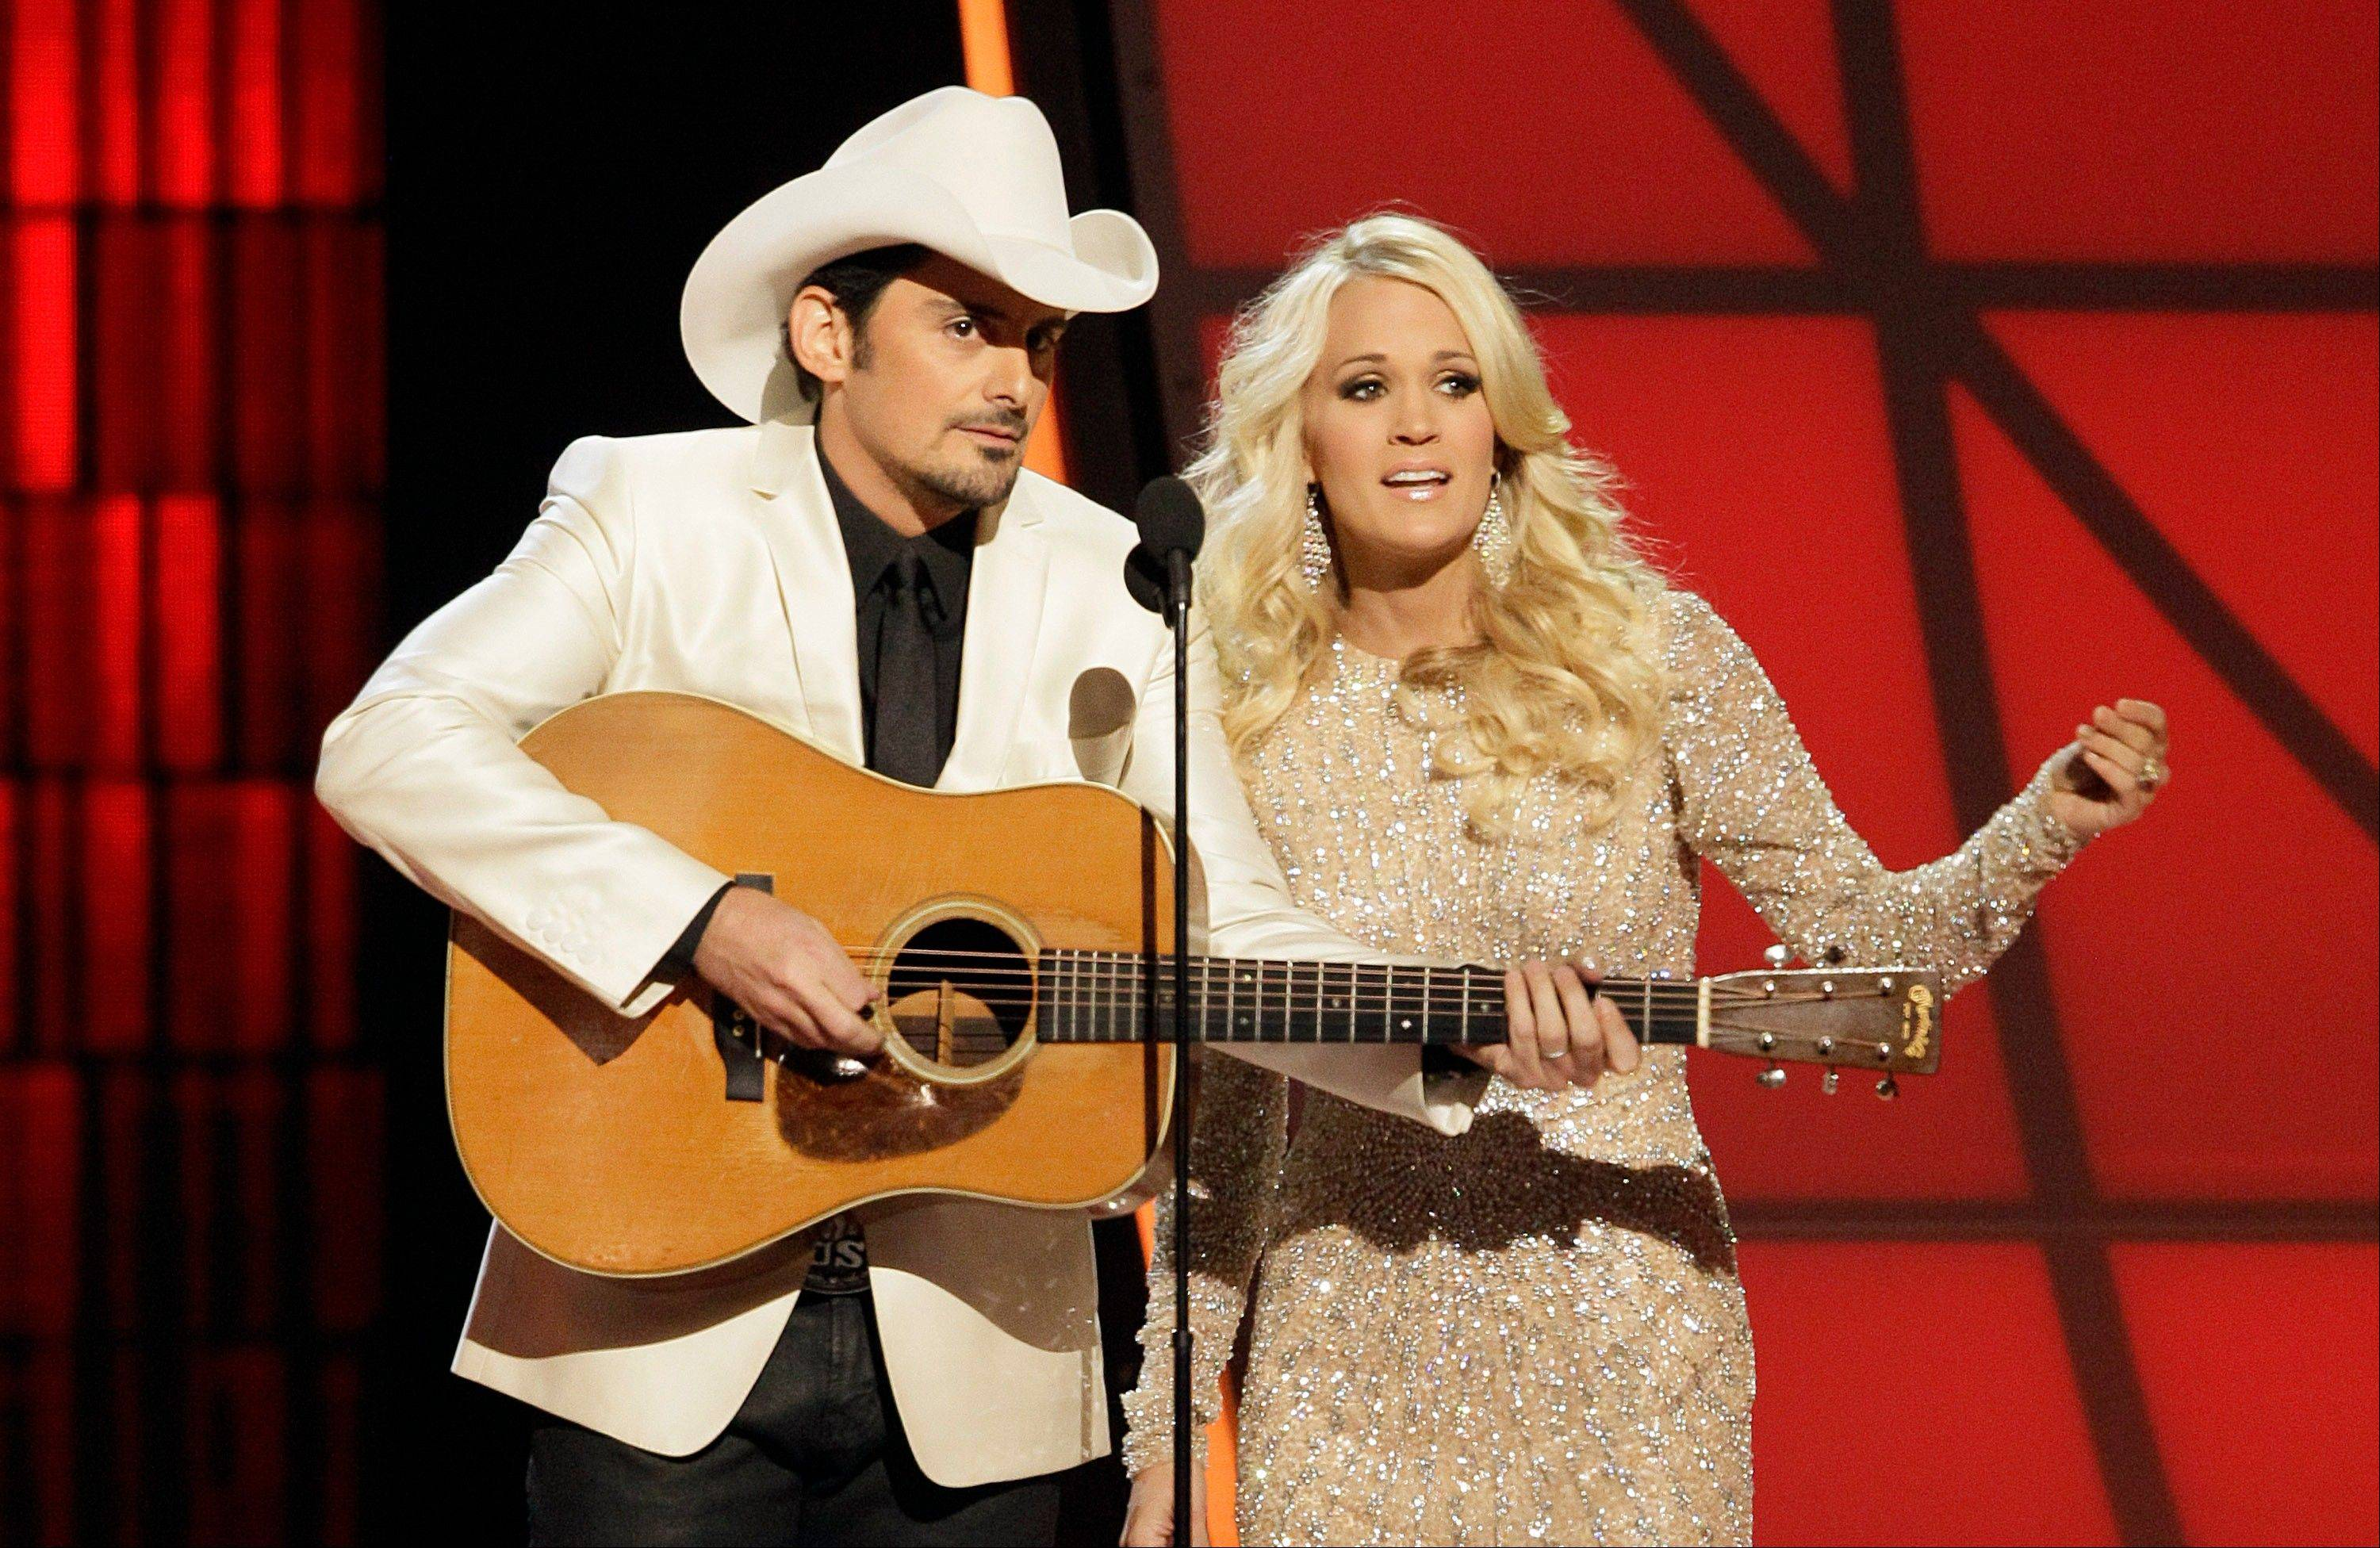 Hosts Brad Paisley, left, and Carrie Underwood perform an opening number onstage at the 46th Annual Country Music Awards at the Bridgestone Arena on Thursday, Nov. 1, 2012, in Nashville, Tenn.